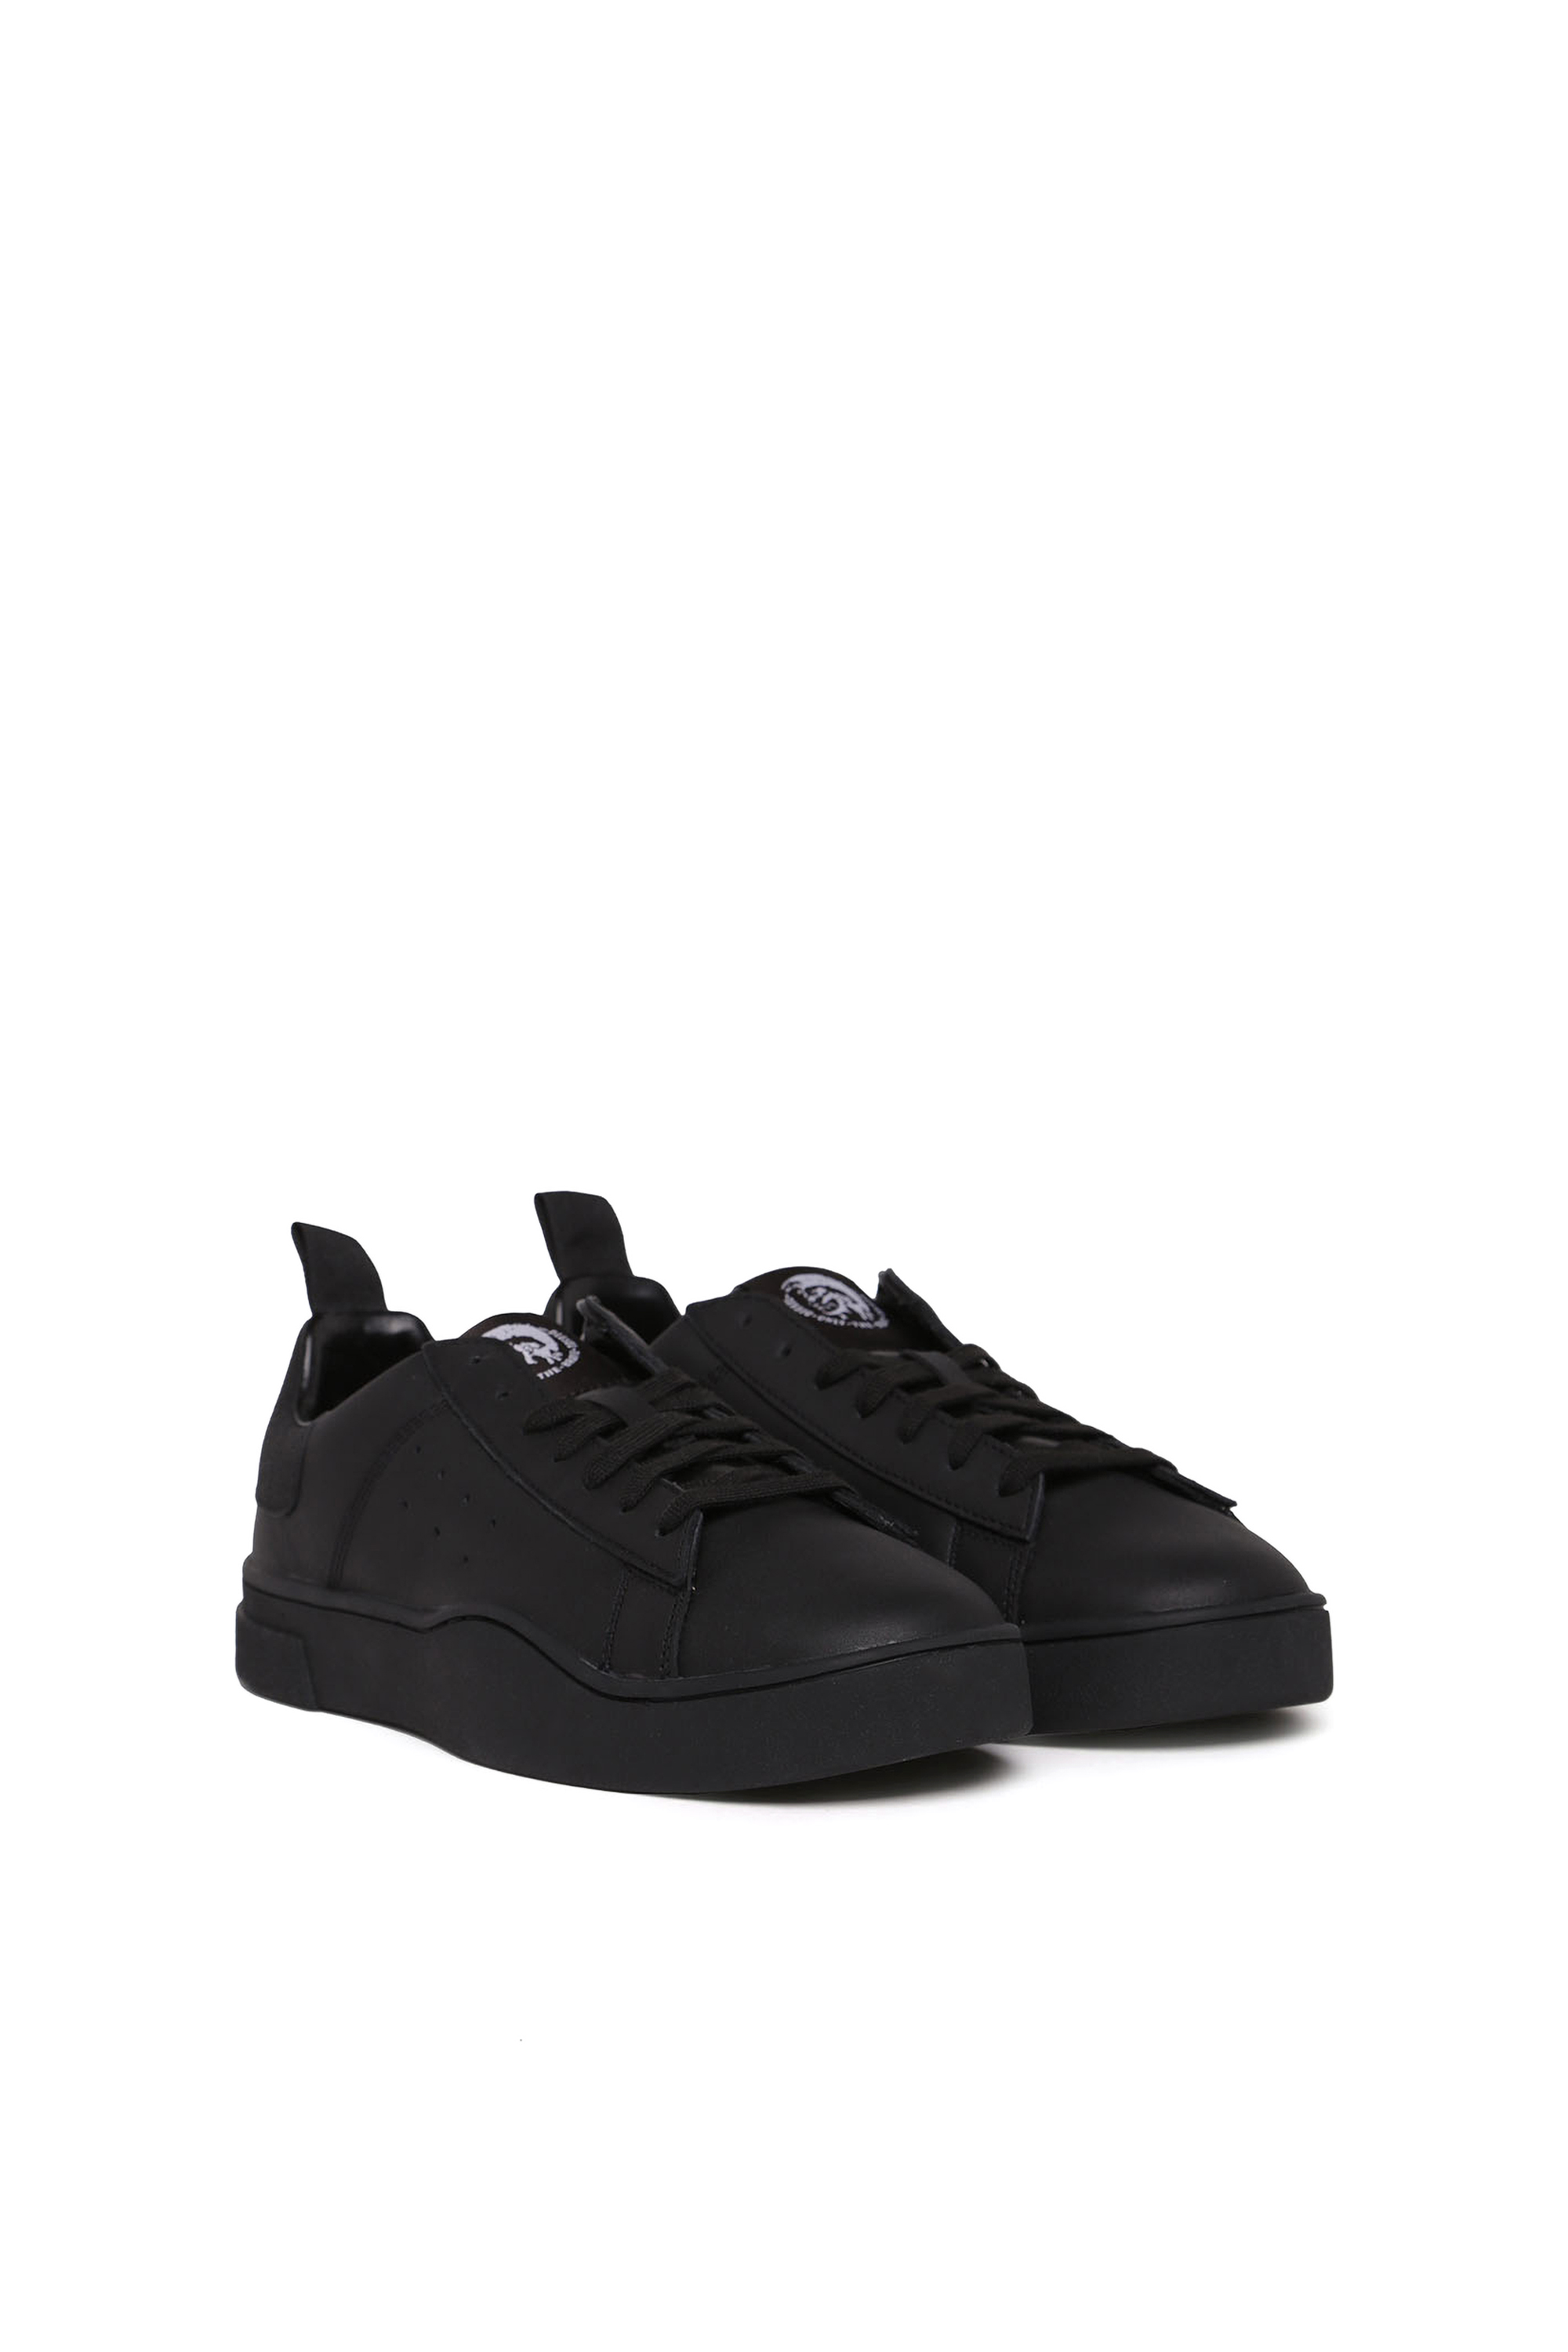 Diesel - S-CLEVER LOW,  - Baskets - Image 2